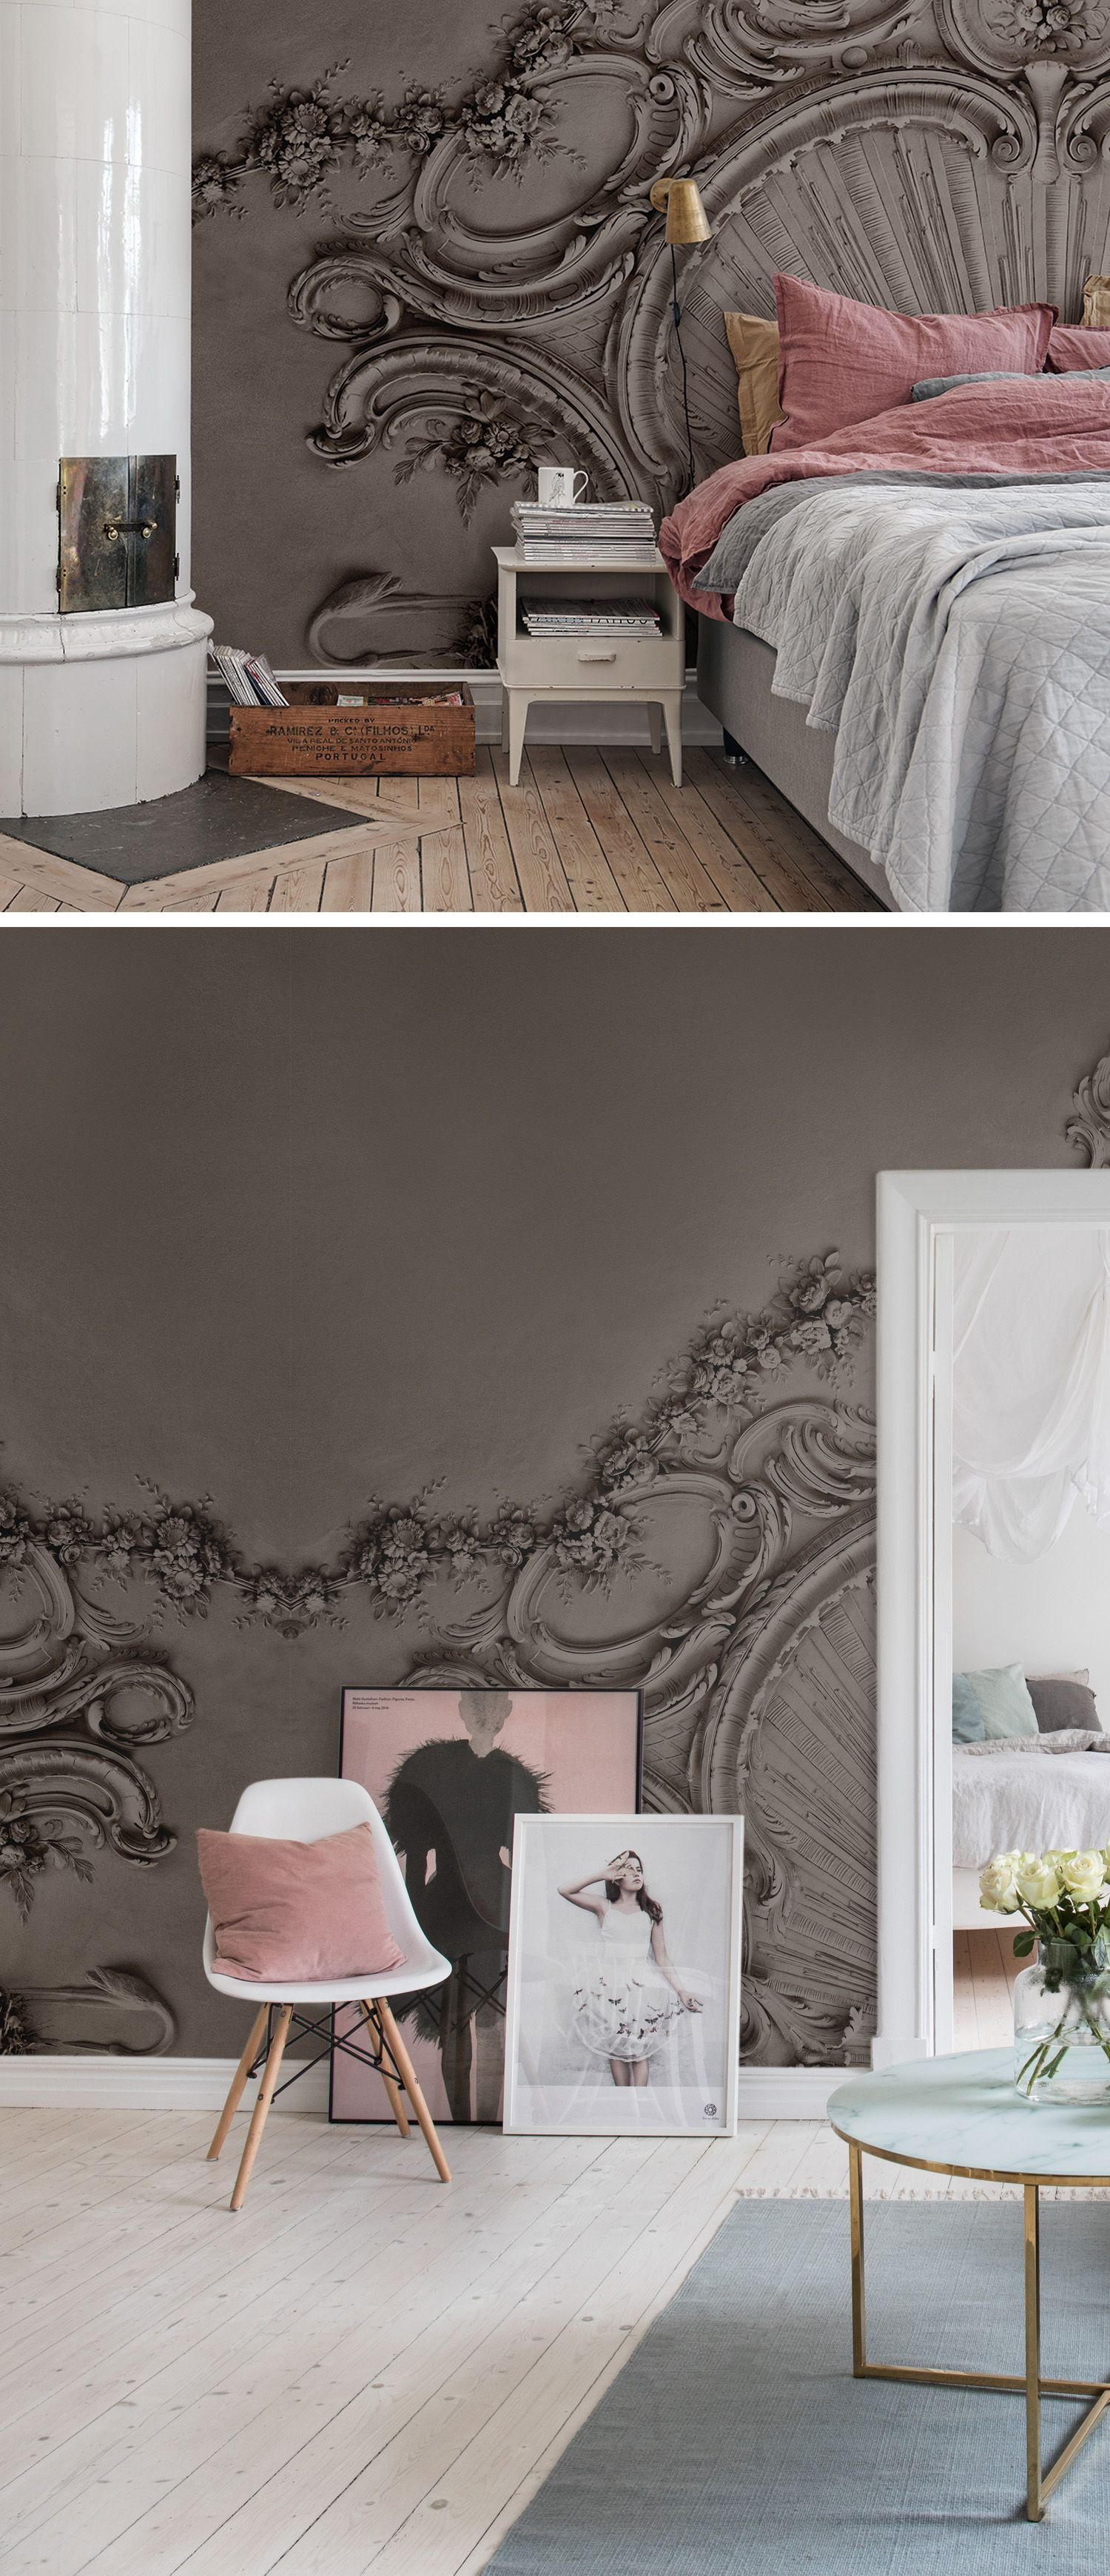 tapete fototapete moderne tapete mural tapete wandgestaltung wandverkleidung tapete. Black Bedroom Furniture Sets. Home Design Ideas